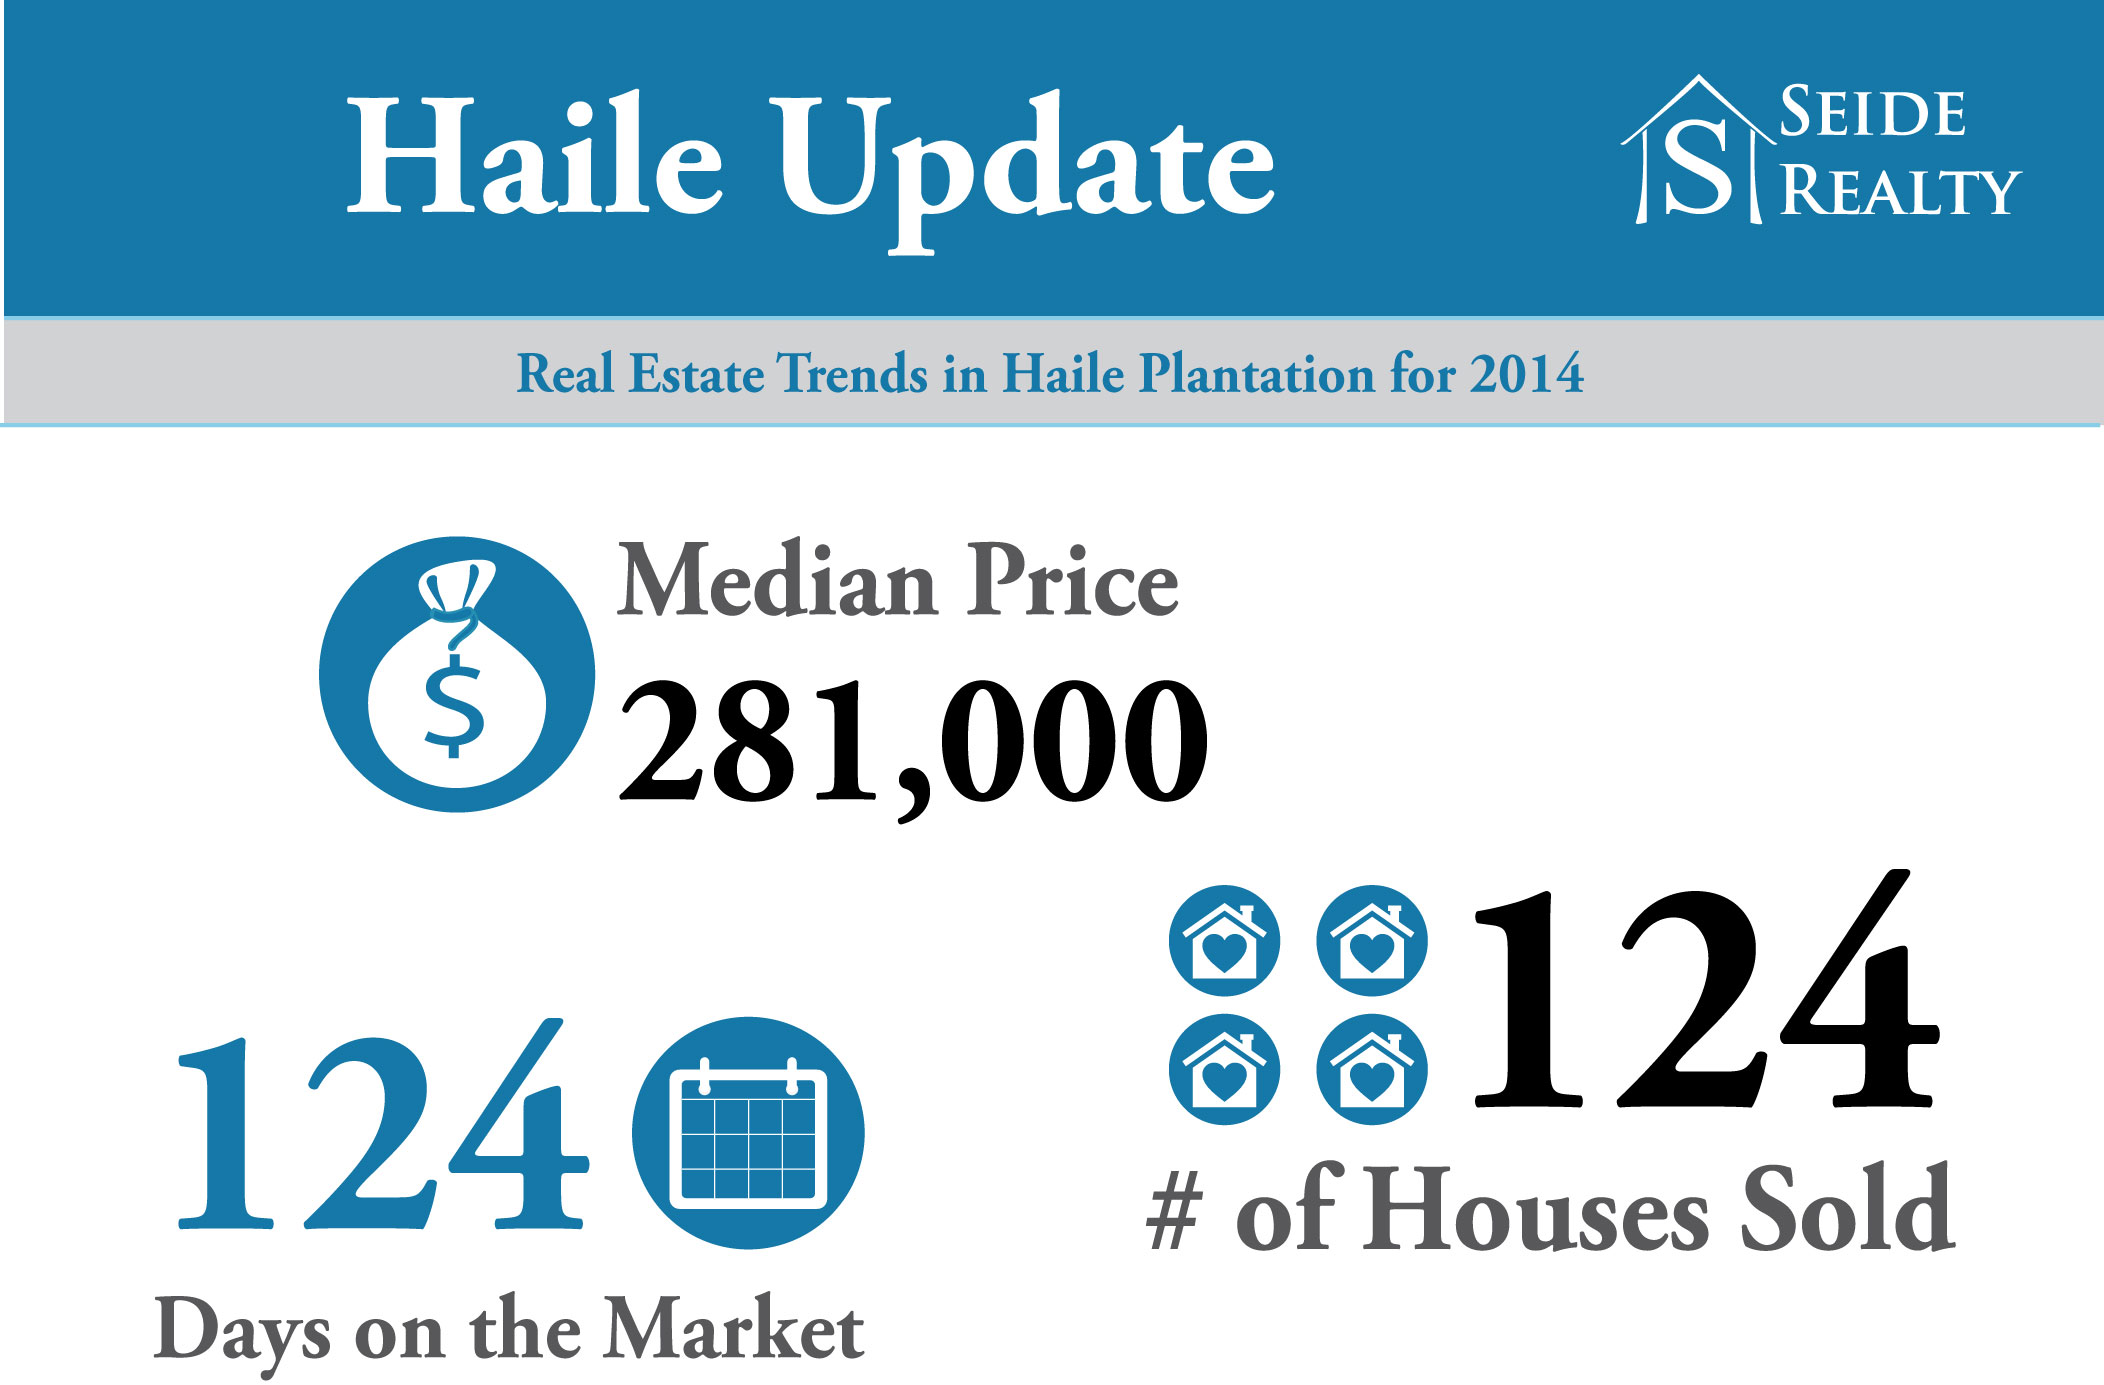 Haile Plantation Real Estate Trends